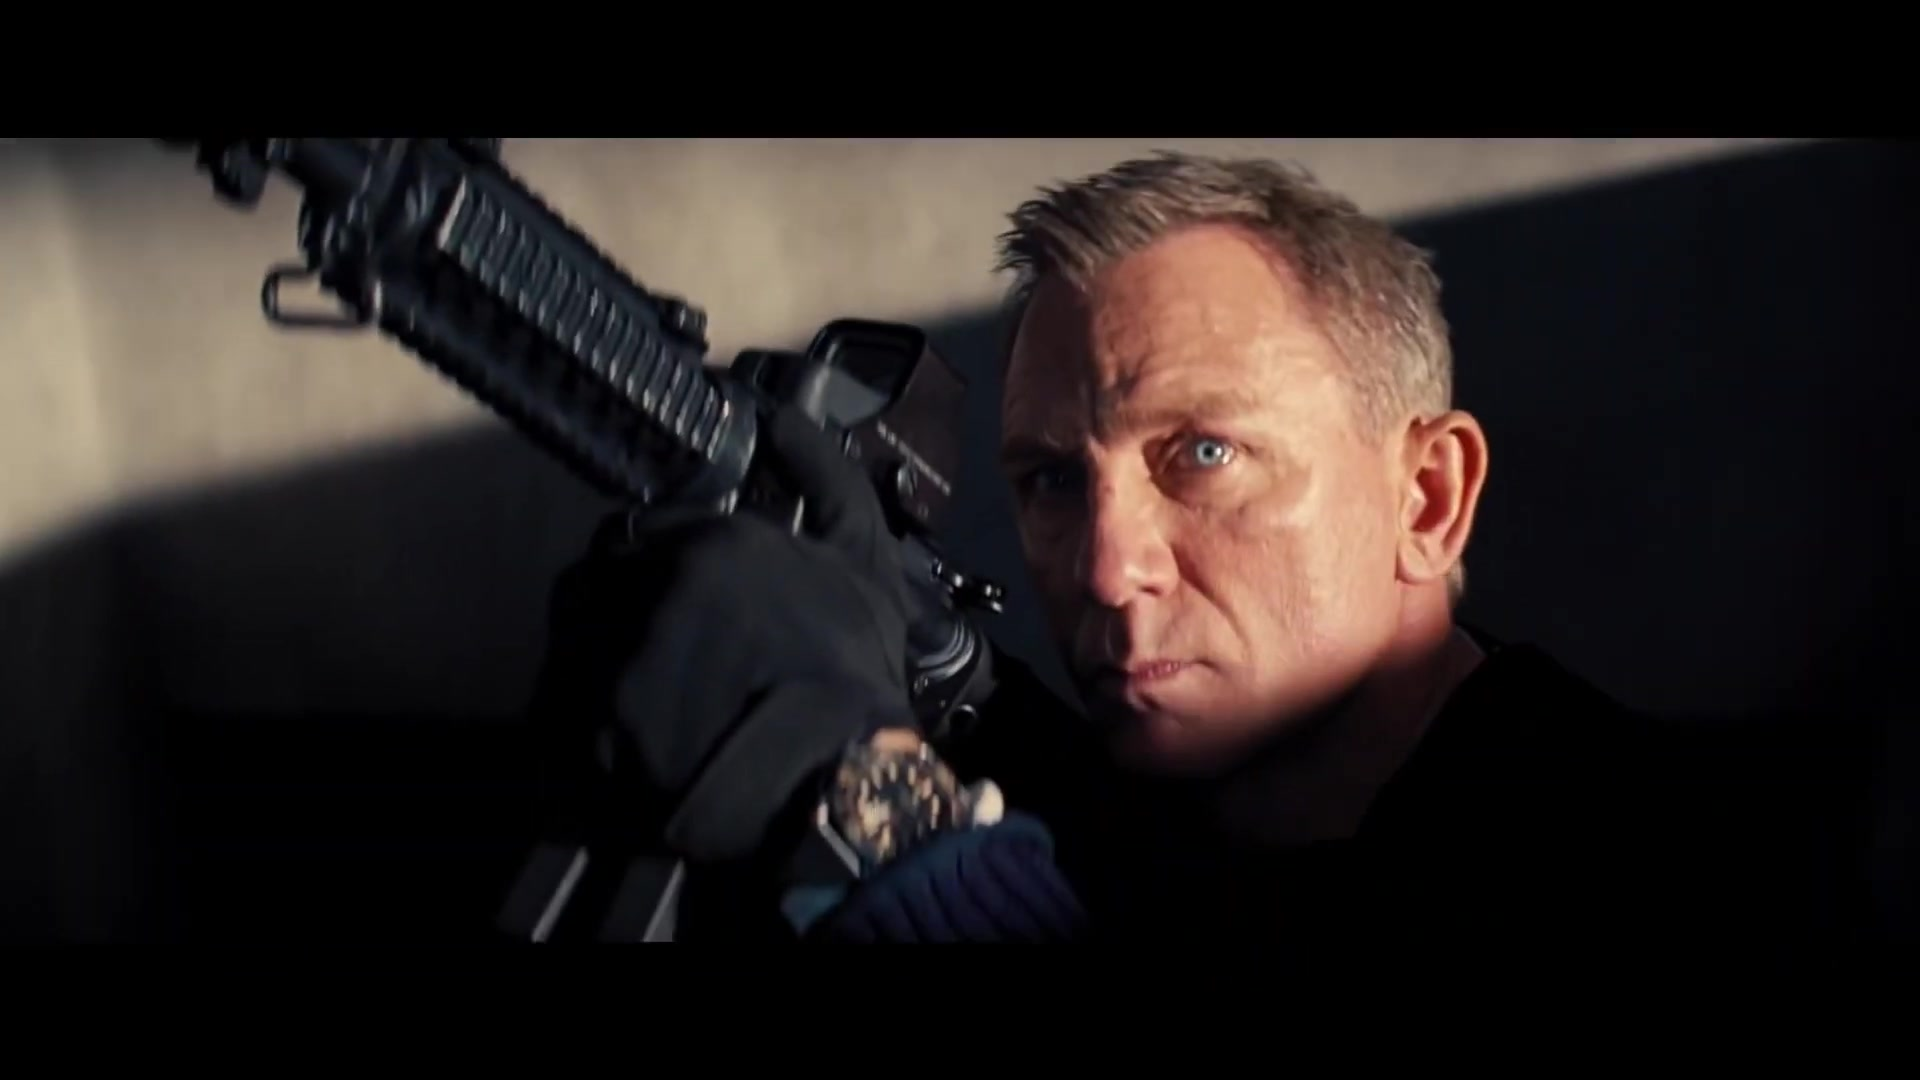 Omega Seamaster Diver 300M 007 James Bond Watch Of Daniel Craig In No Time To Die (2021)